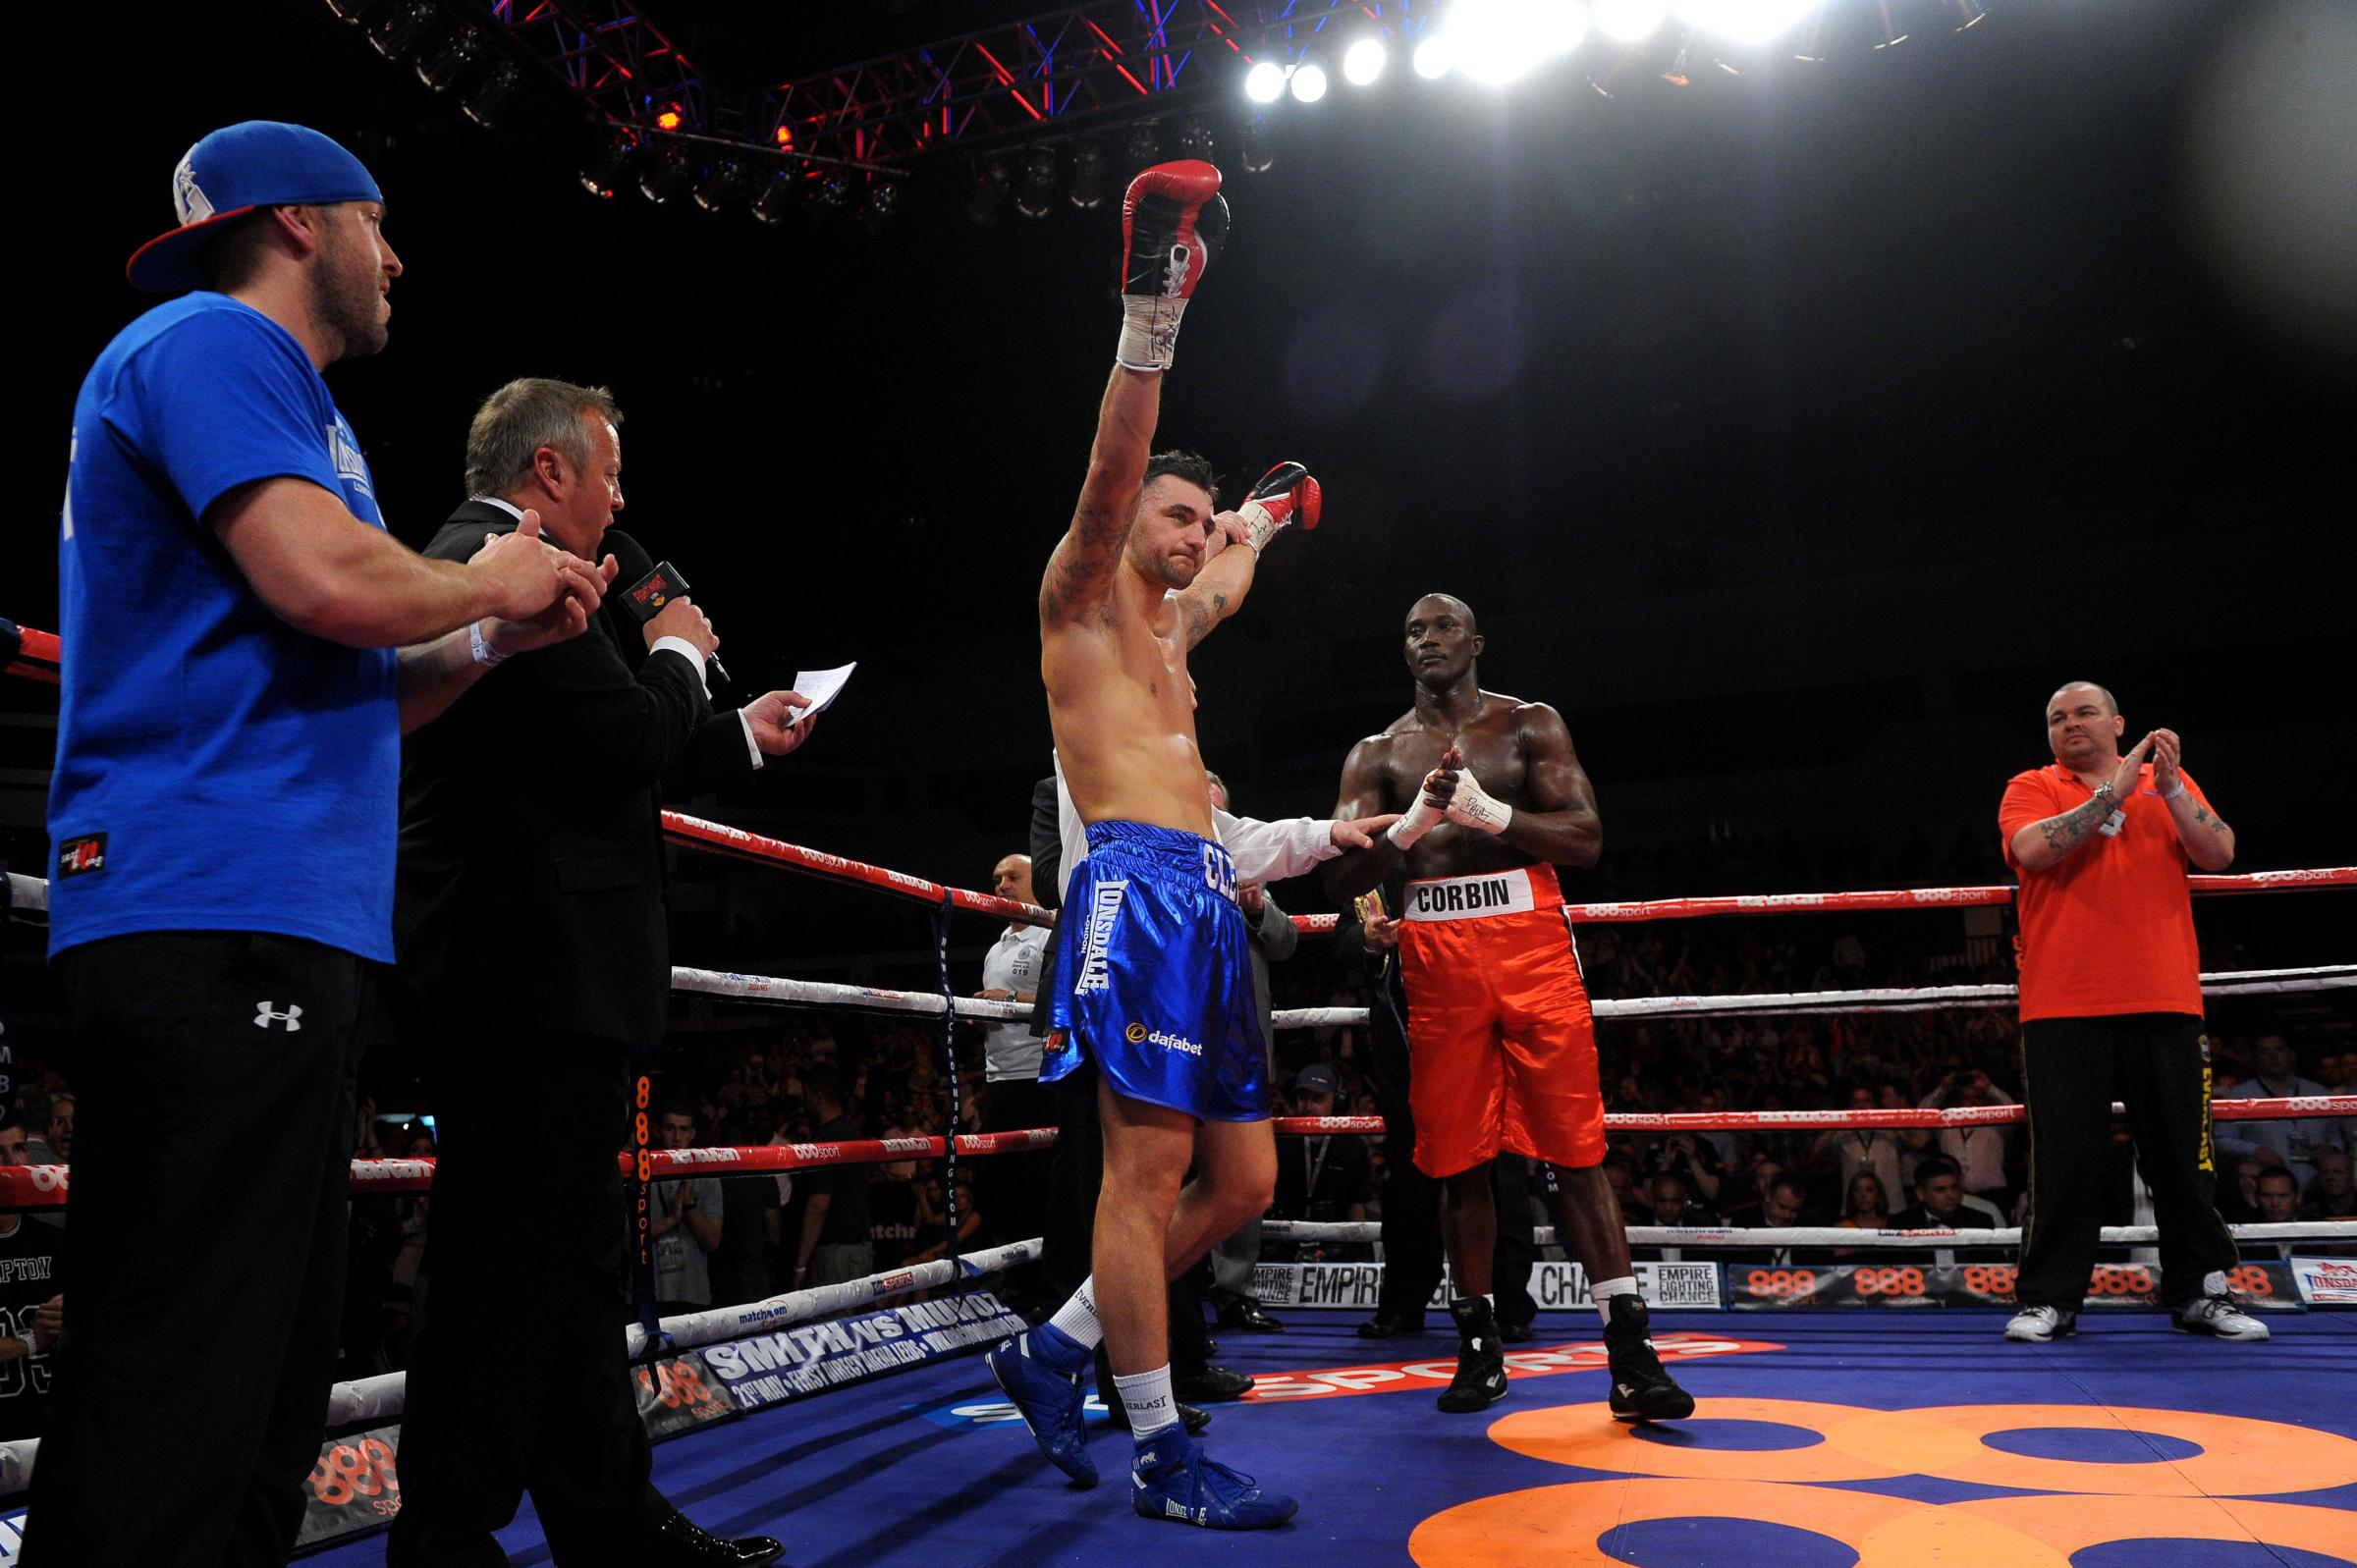 Rees steals the show on positive night for Welsh boxing